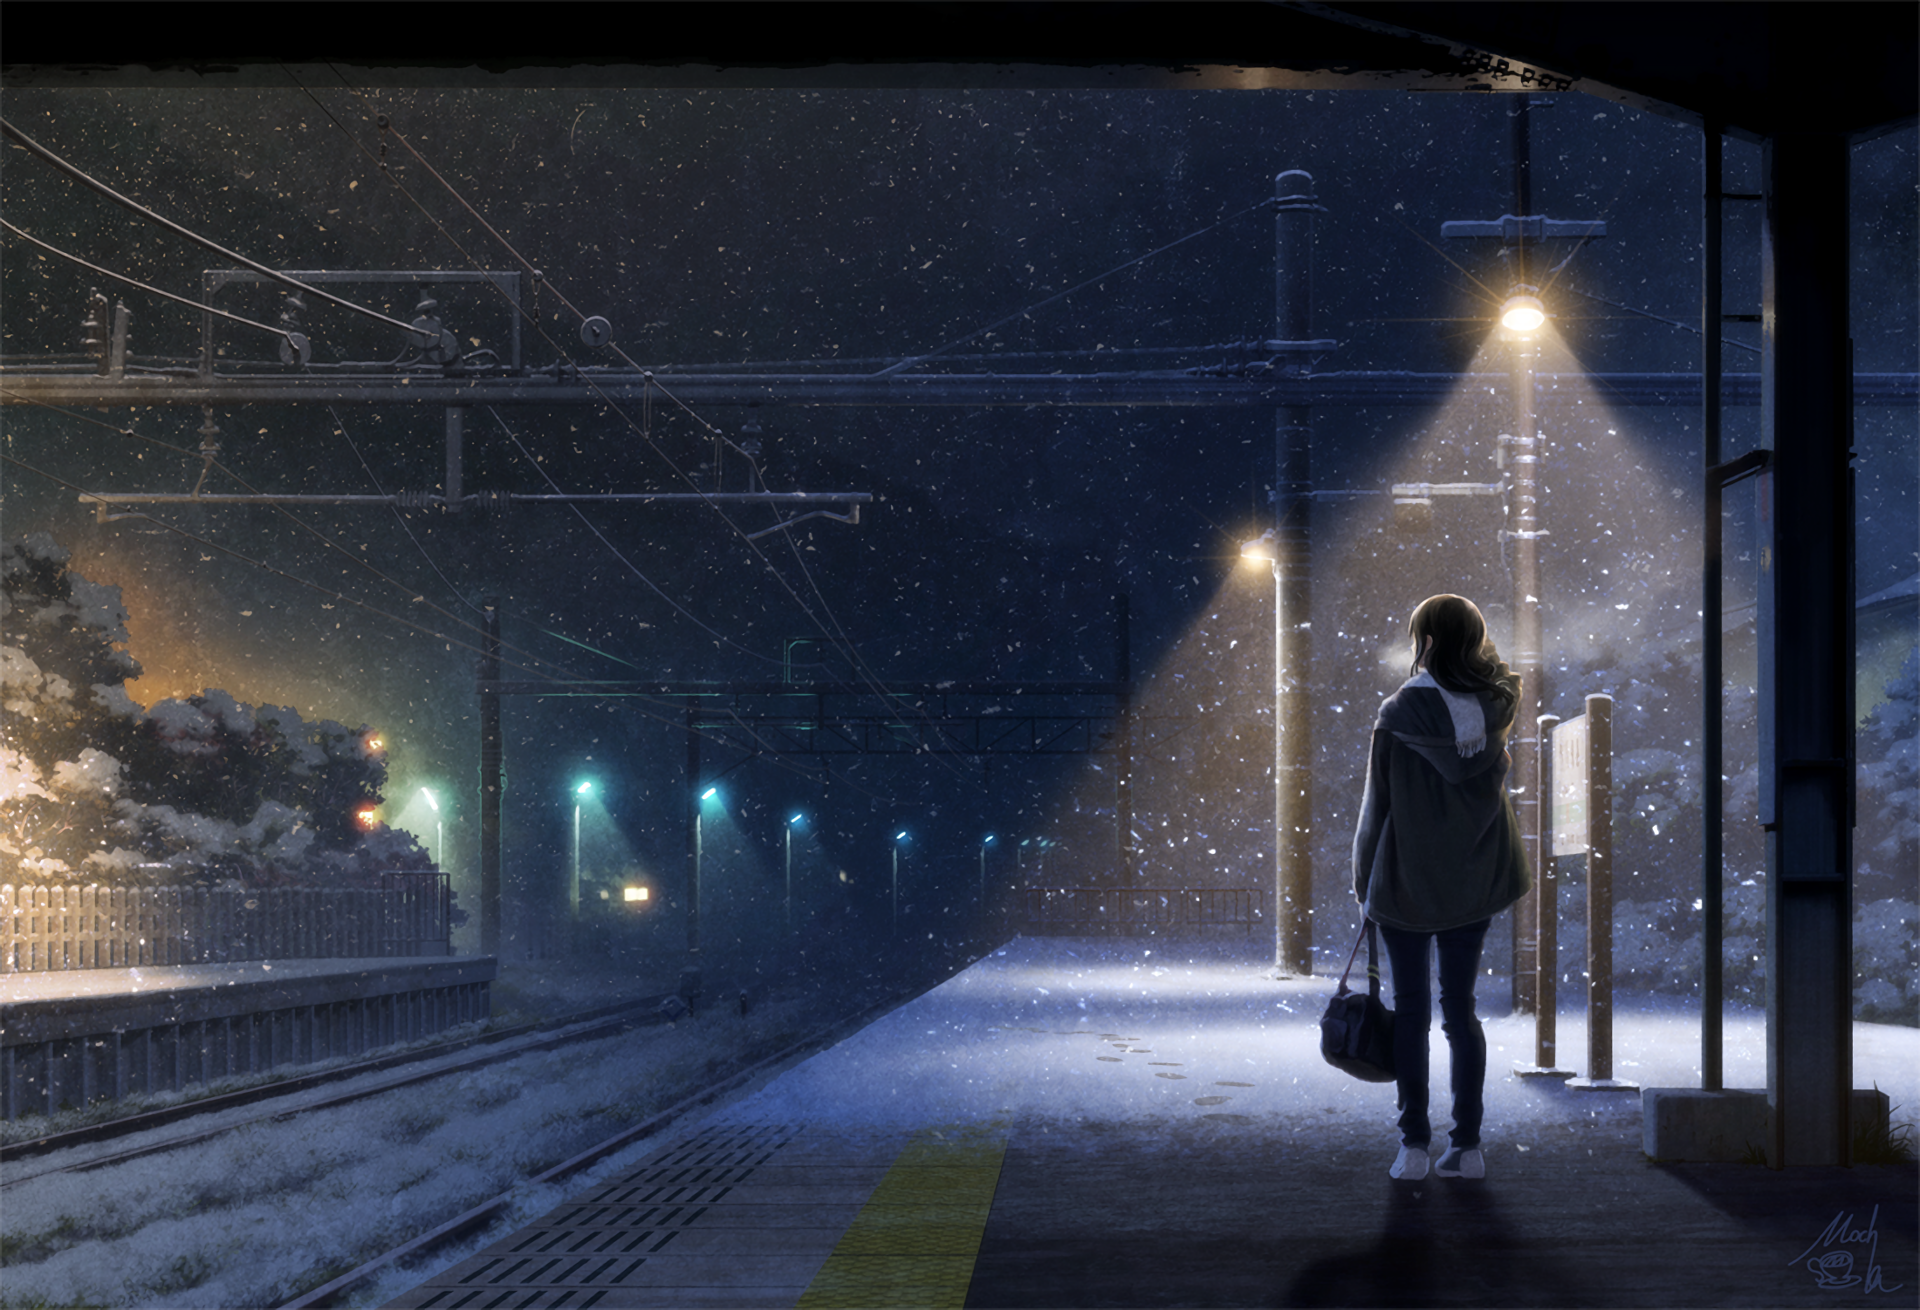 Download Train Station Wallpaper Hd Backgrounds Download